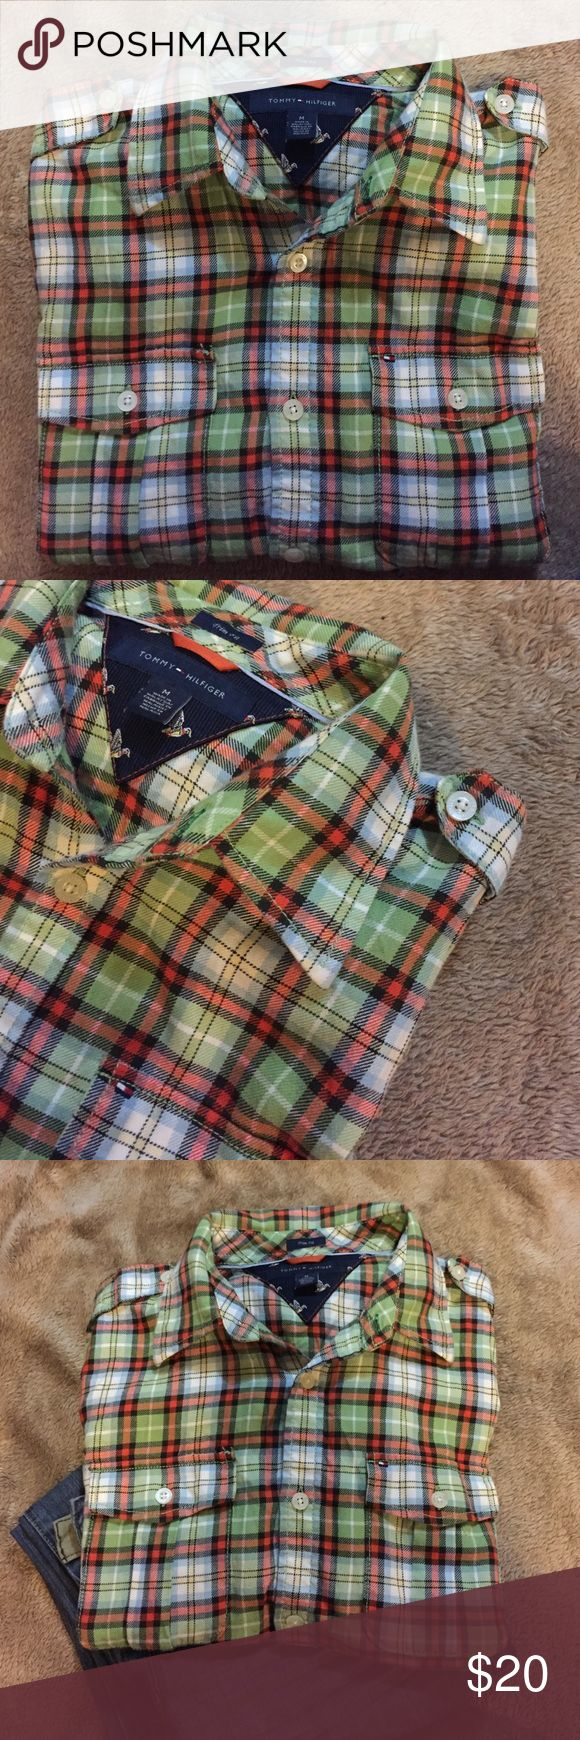 Tommy Hilfiger Flannel Tommy Hilfiger long sleeve button down Flannel - 100% cotton - trim fit Tommy Hilfiger Shirts Casual Button Down Shirts